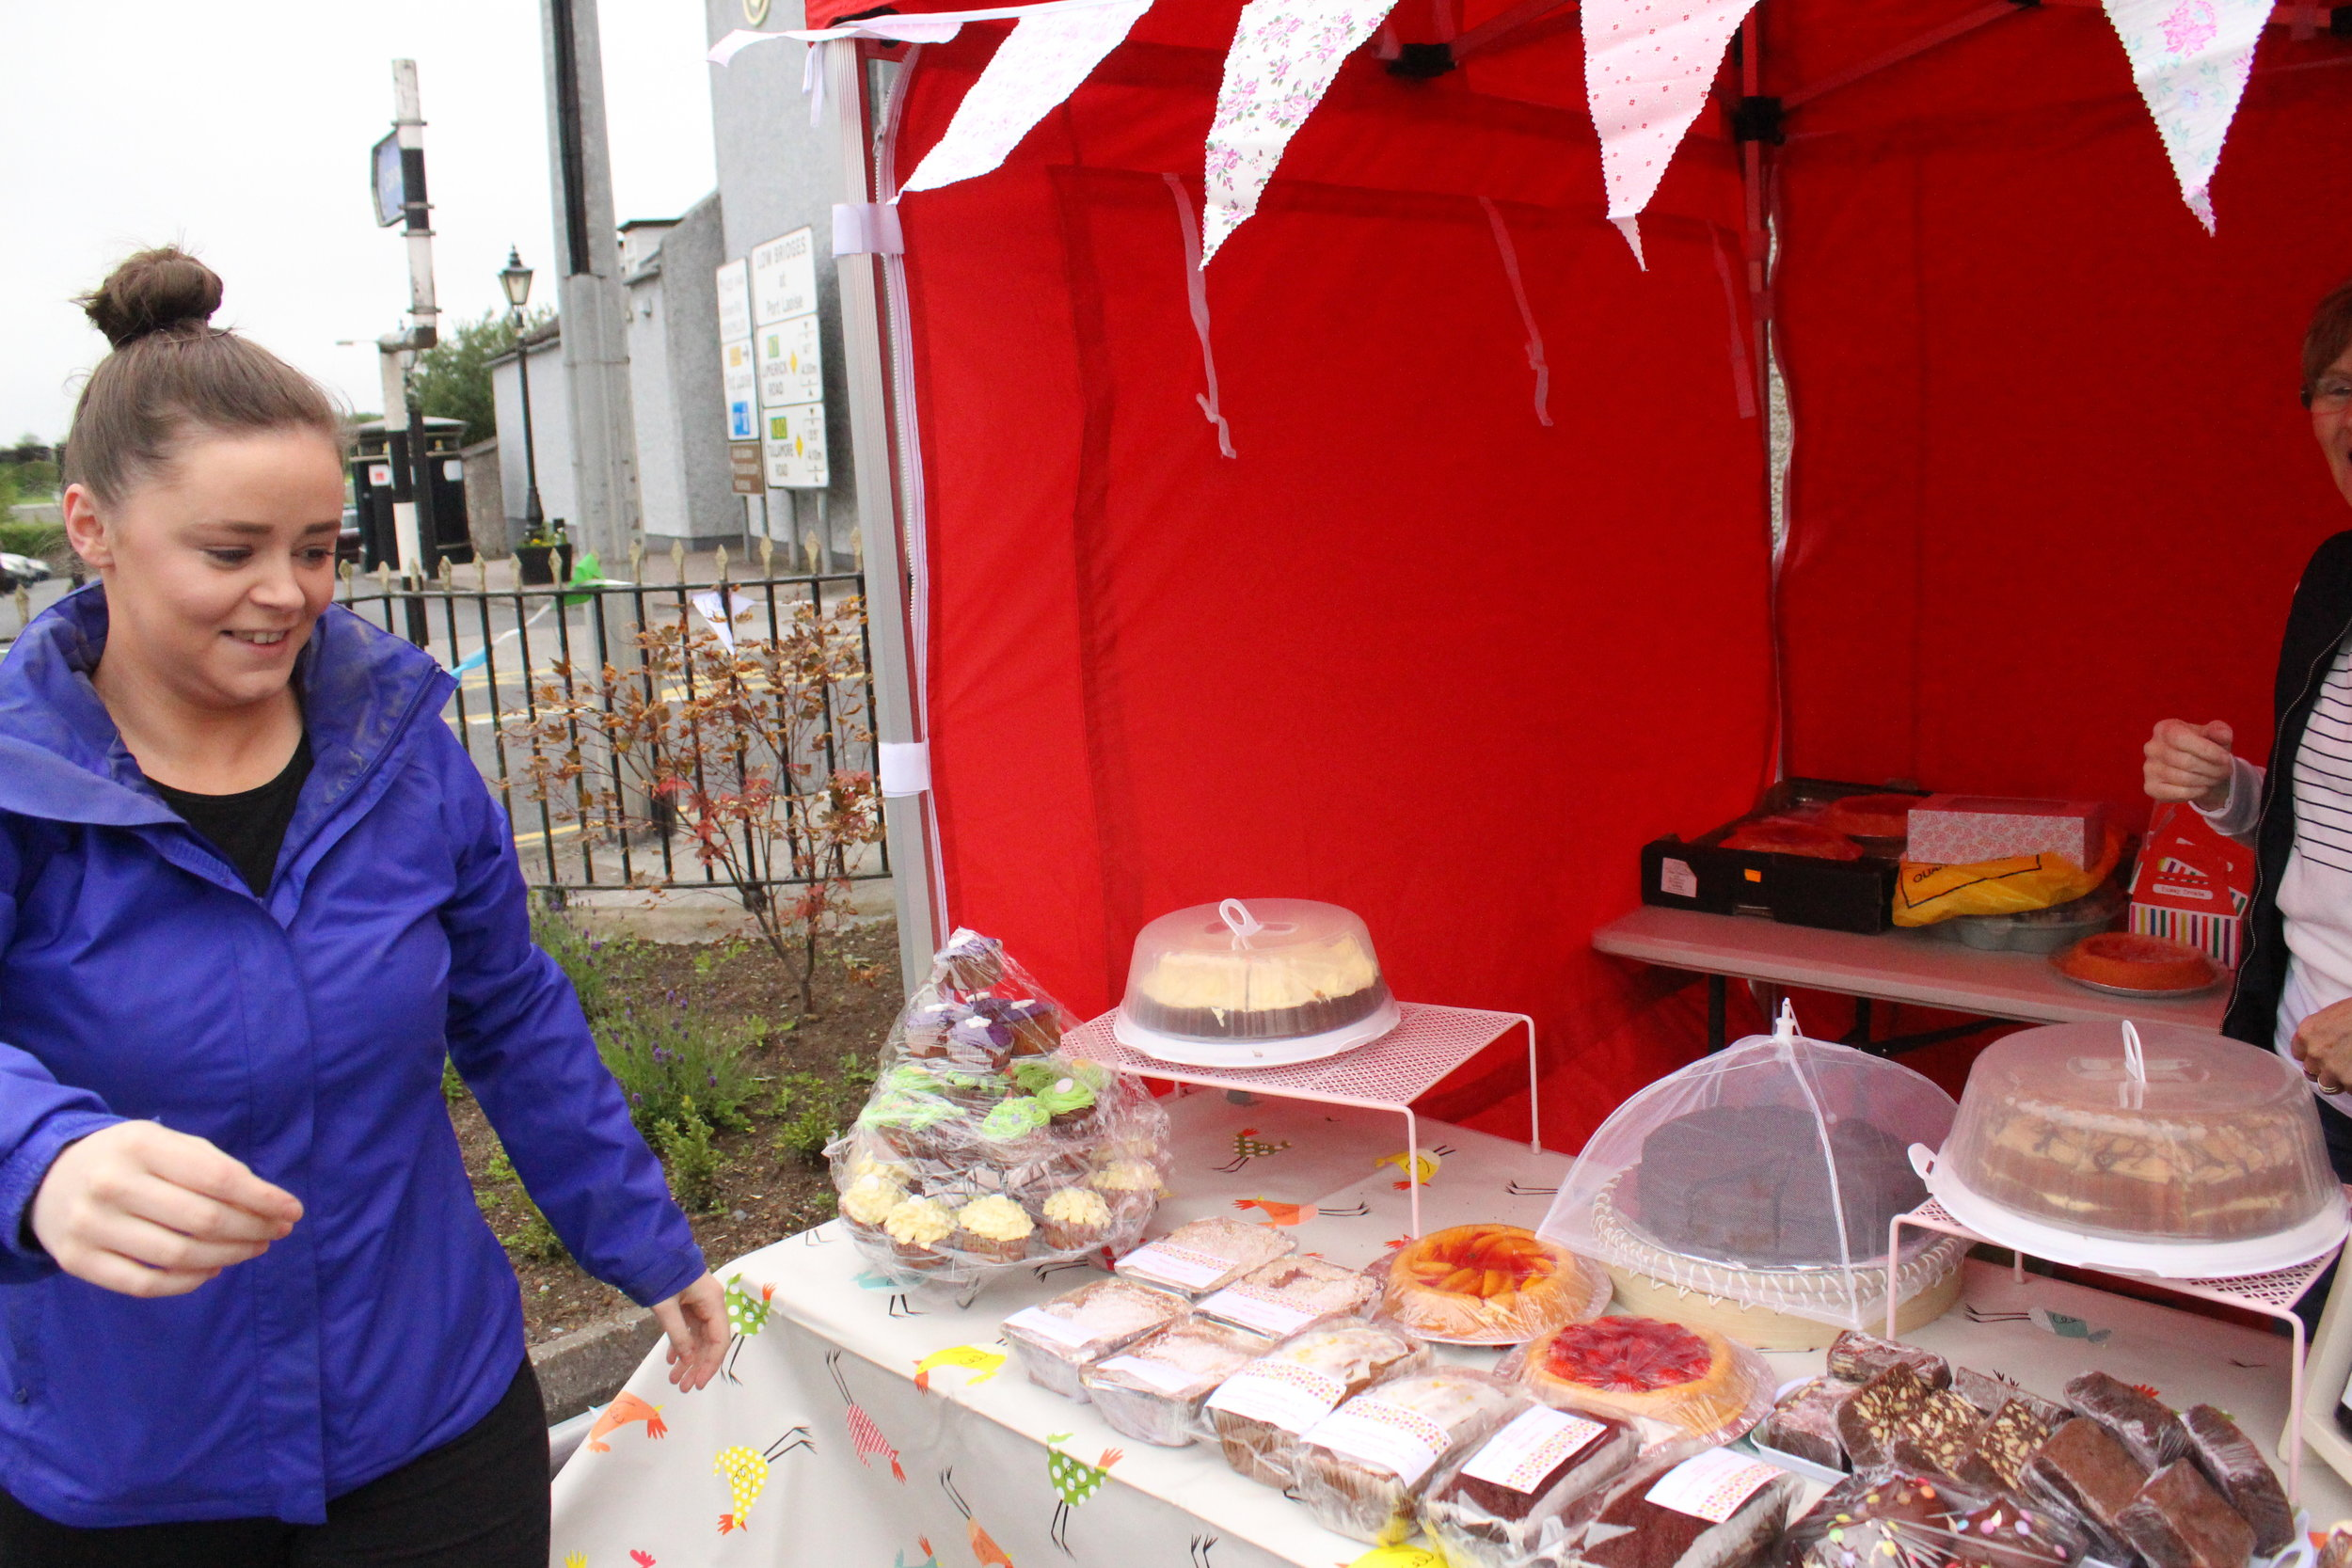 - Sarah Tynan- cakes, jams, chutney, quiche and special occasion cakes are her specieality